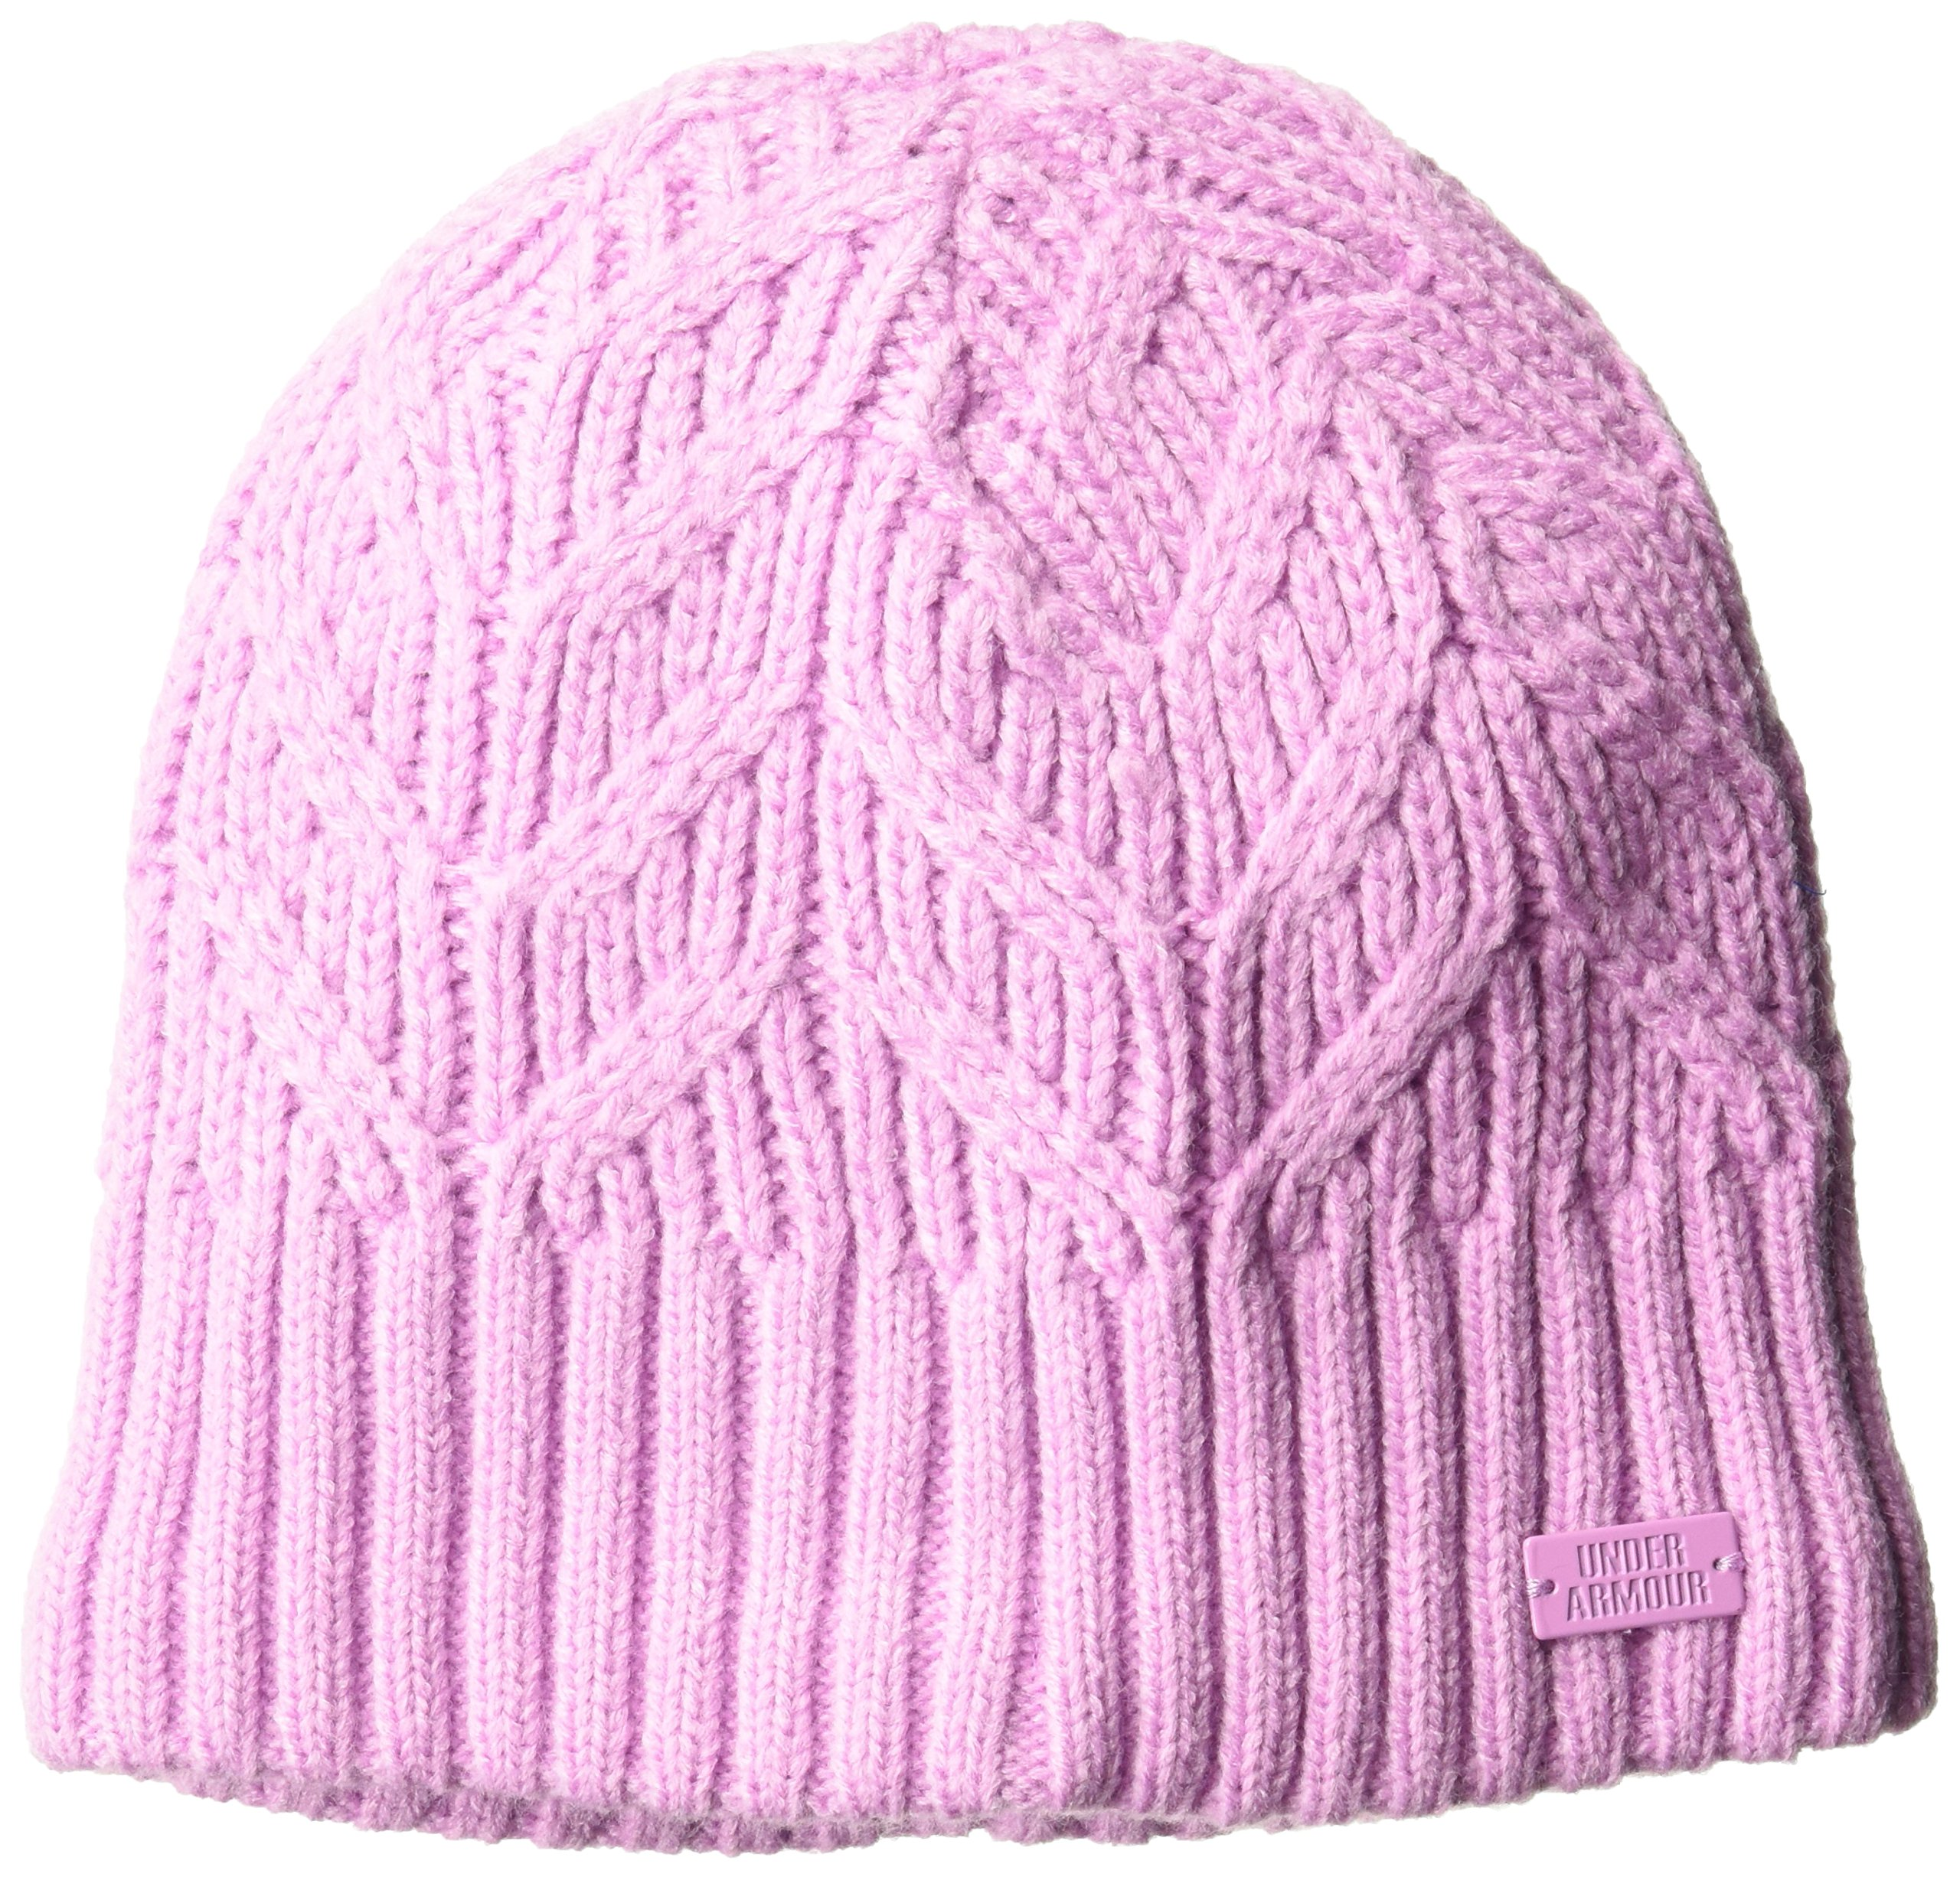 Under Armour Women's Around Town Beanie, (924)/Icelandic Rose, One Size Fits All by Under Armour